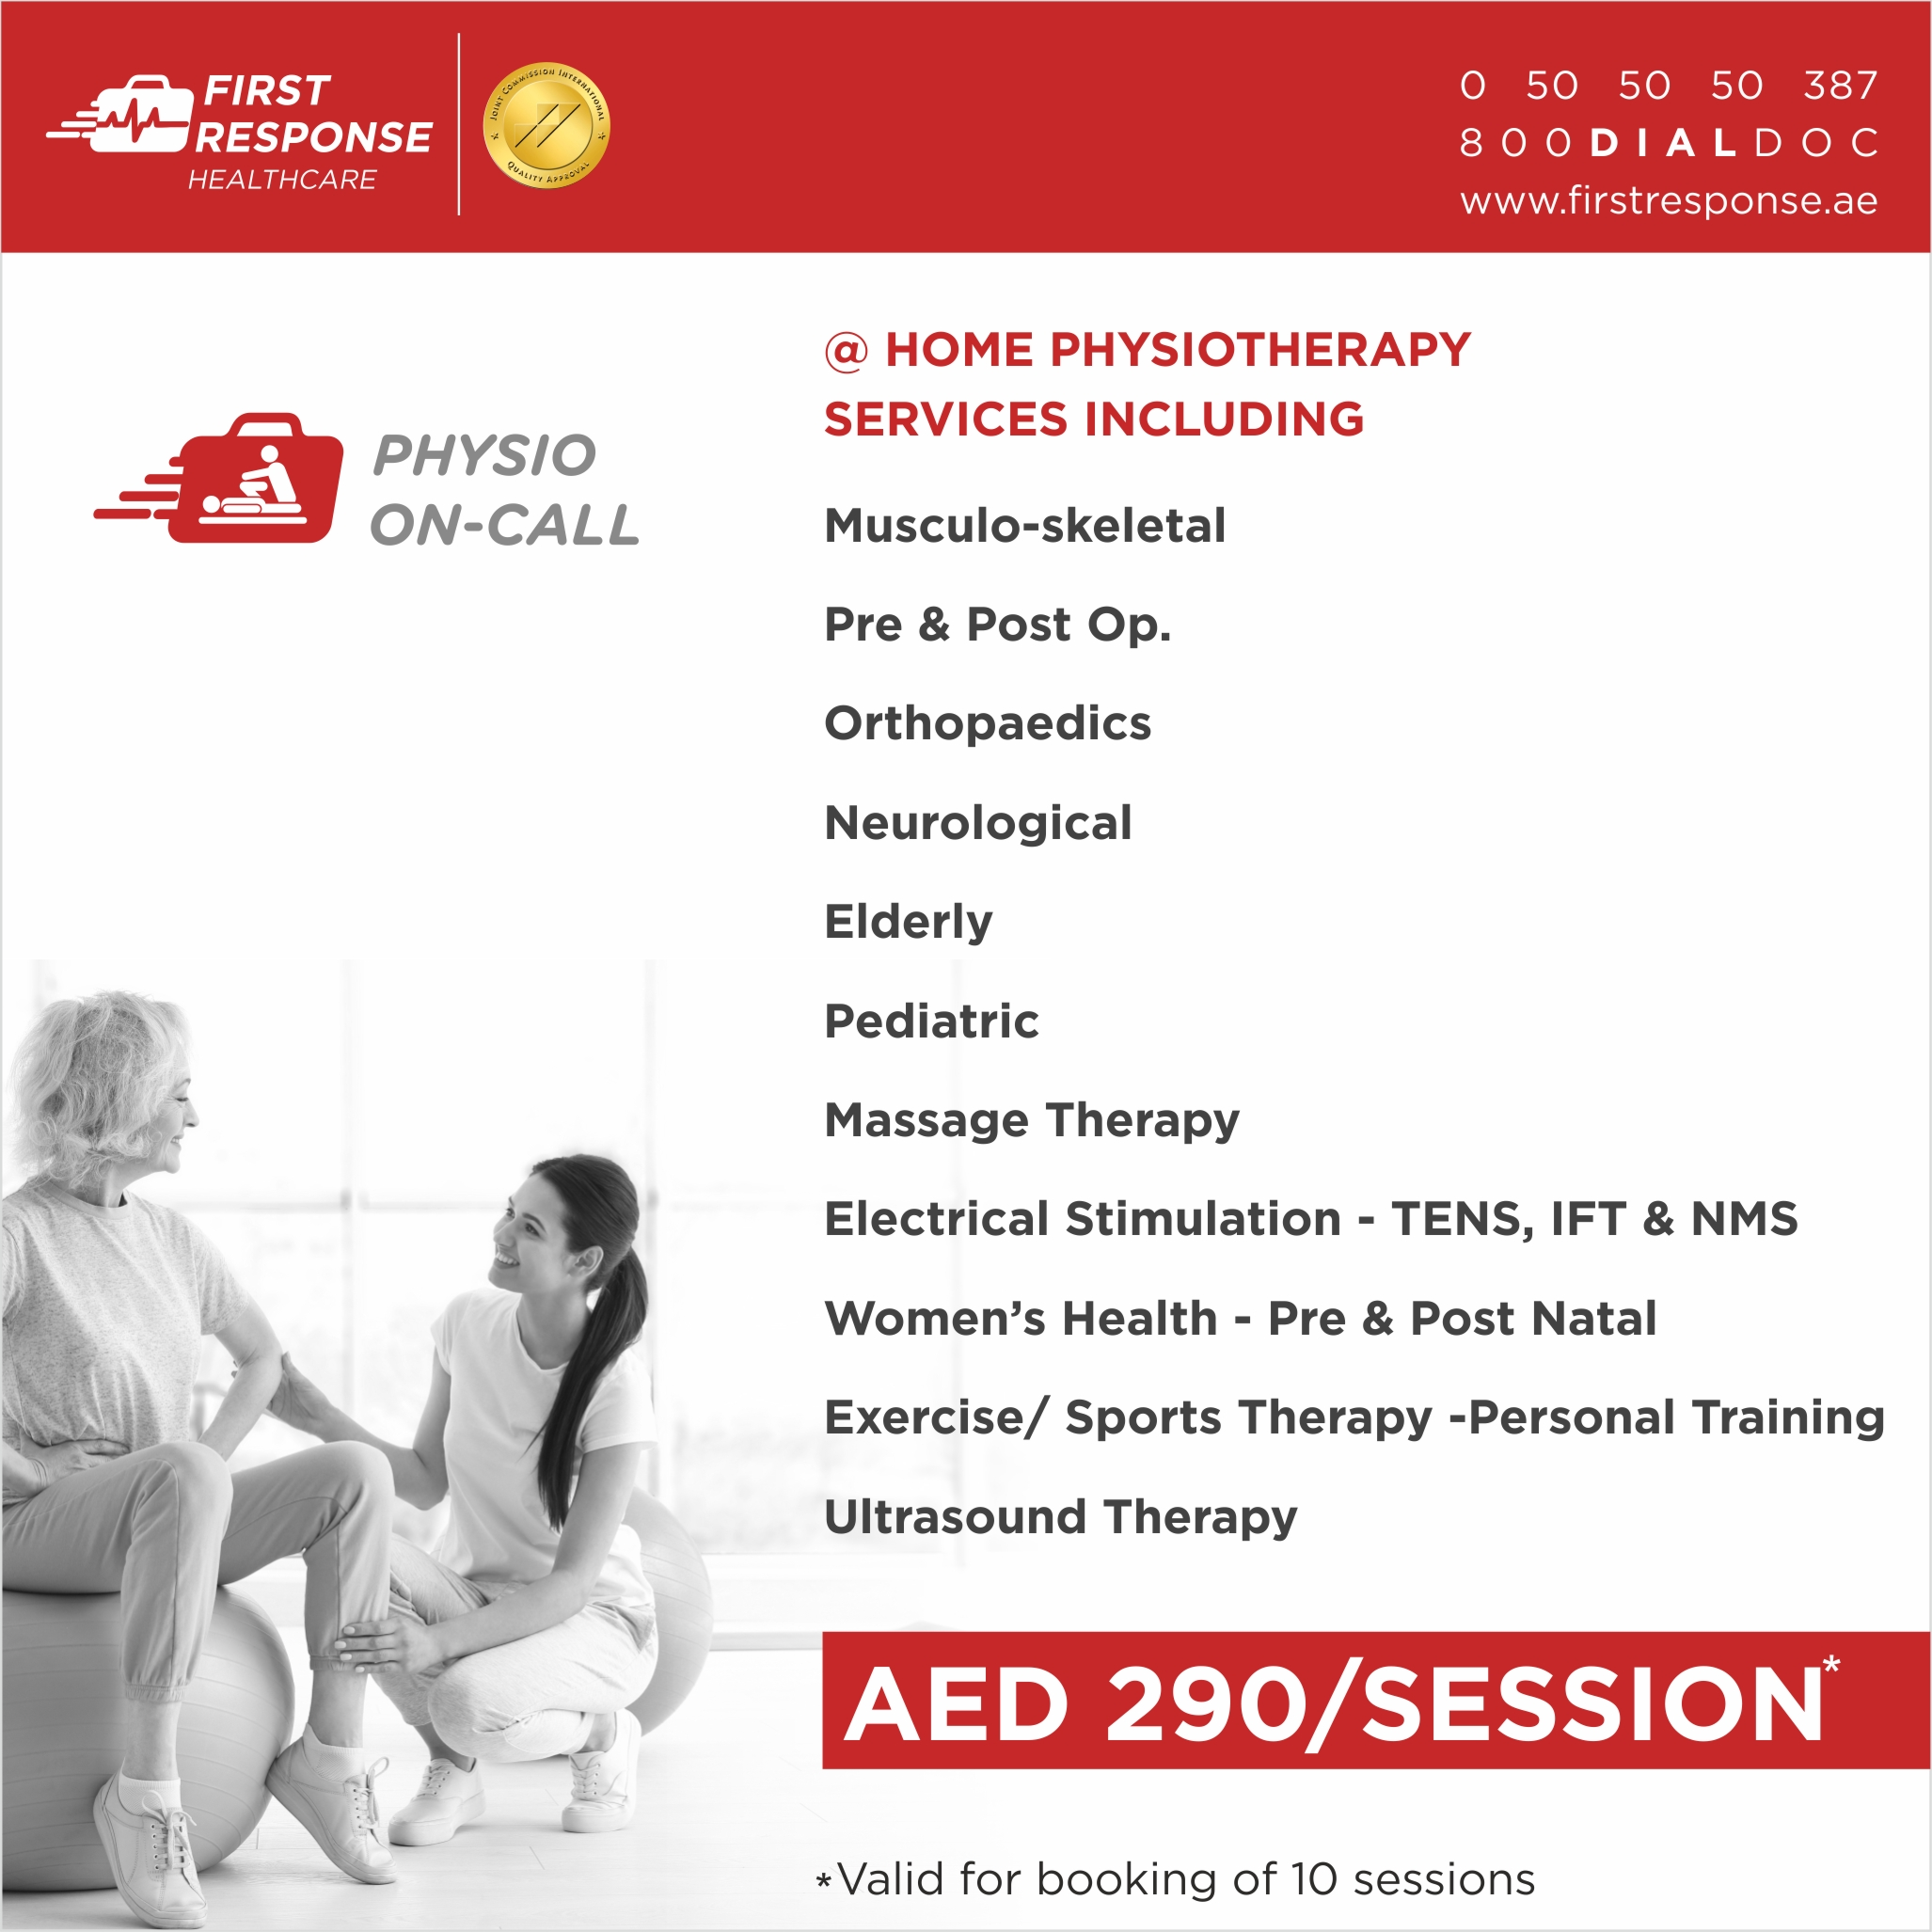 All You Need to Know About Home Physiotherapy in Healthcare Sector